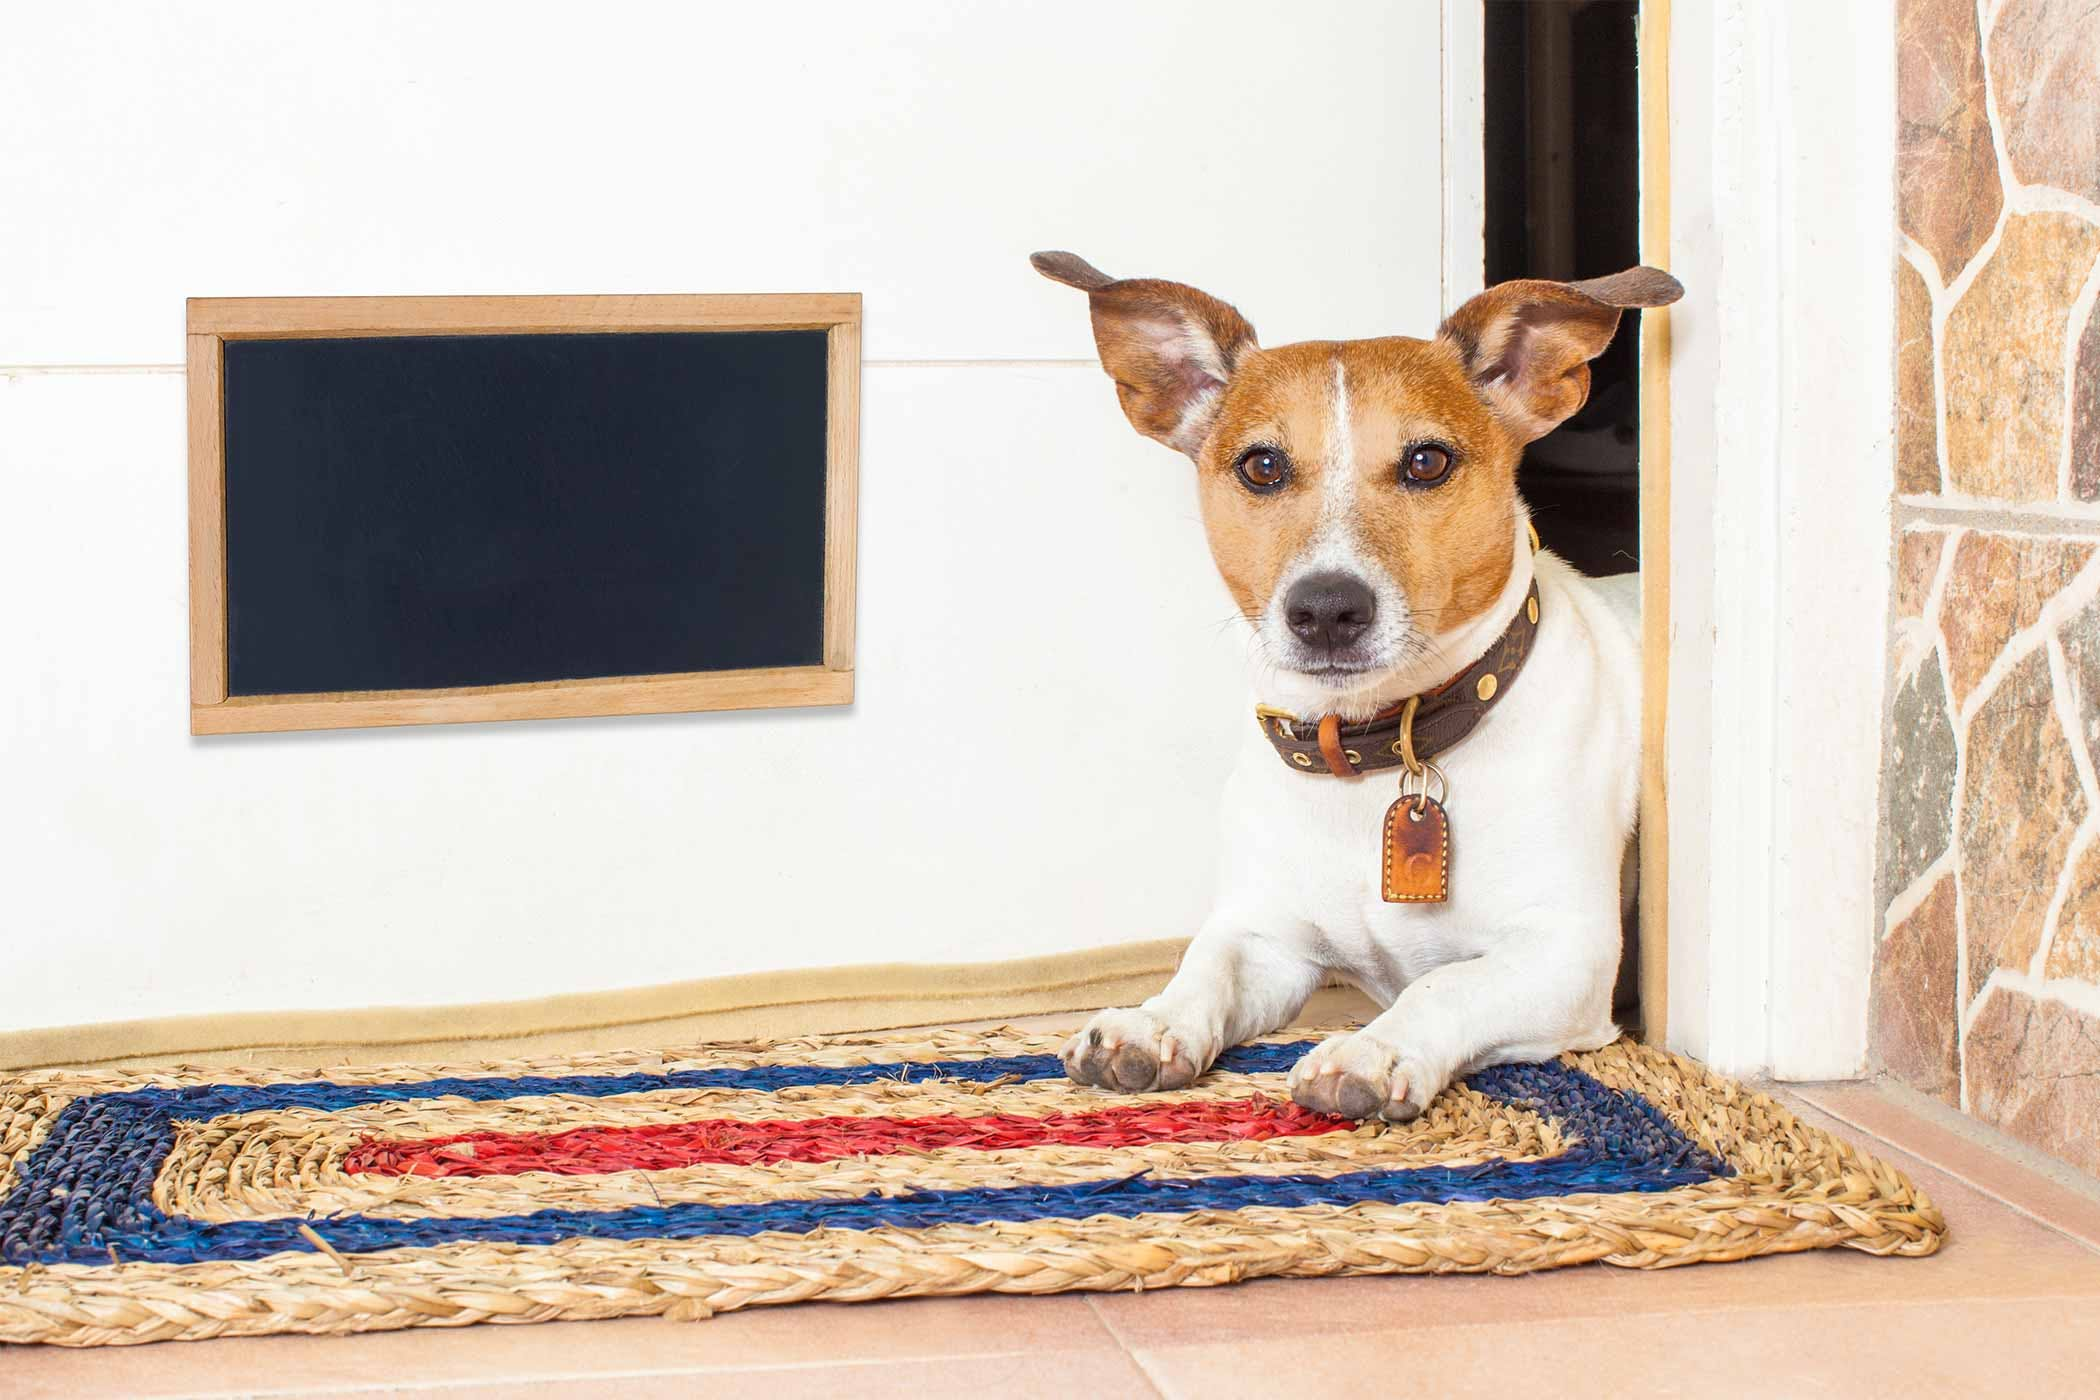 How to Train Your Dog to Not Scratch the Door